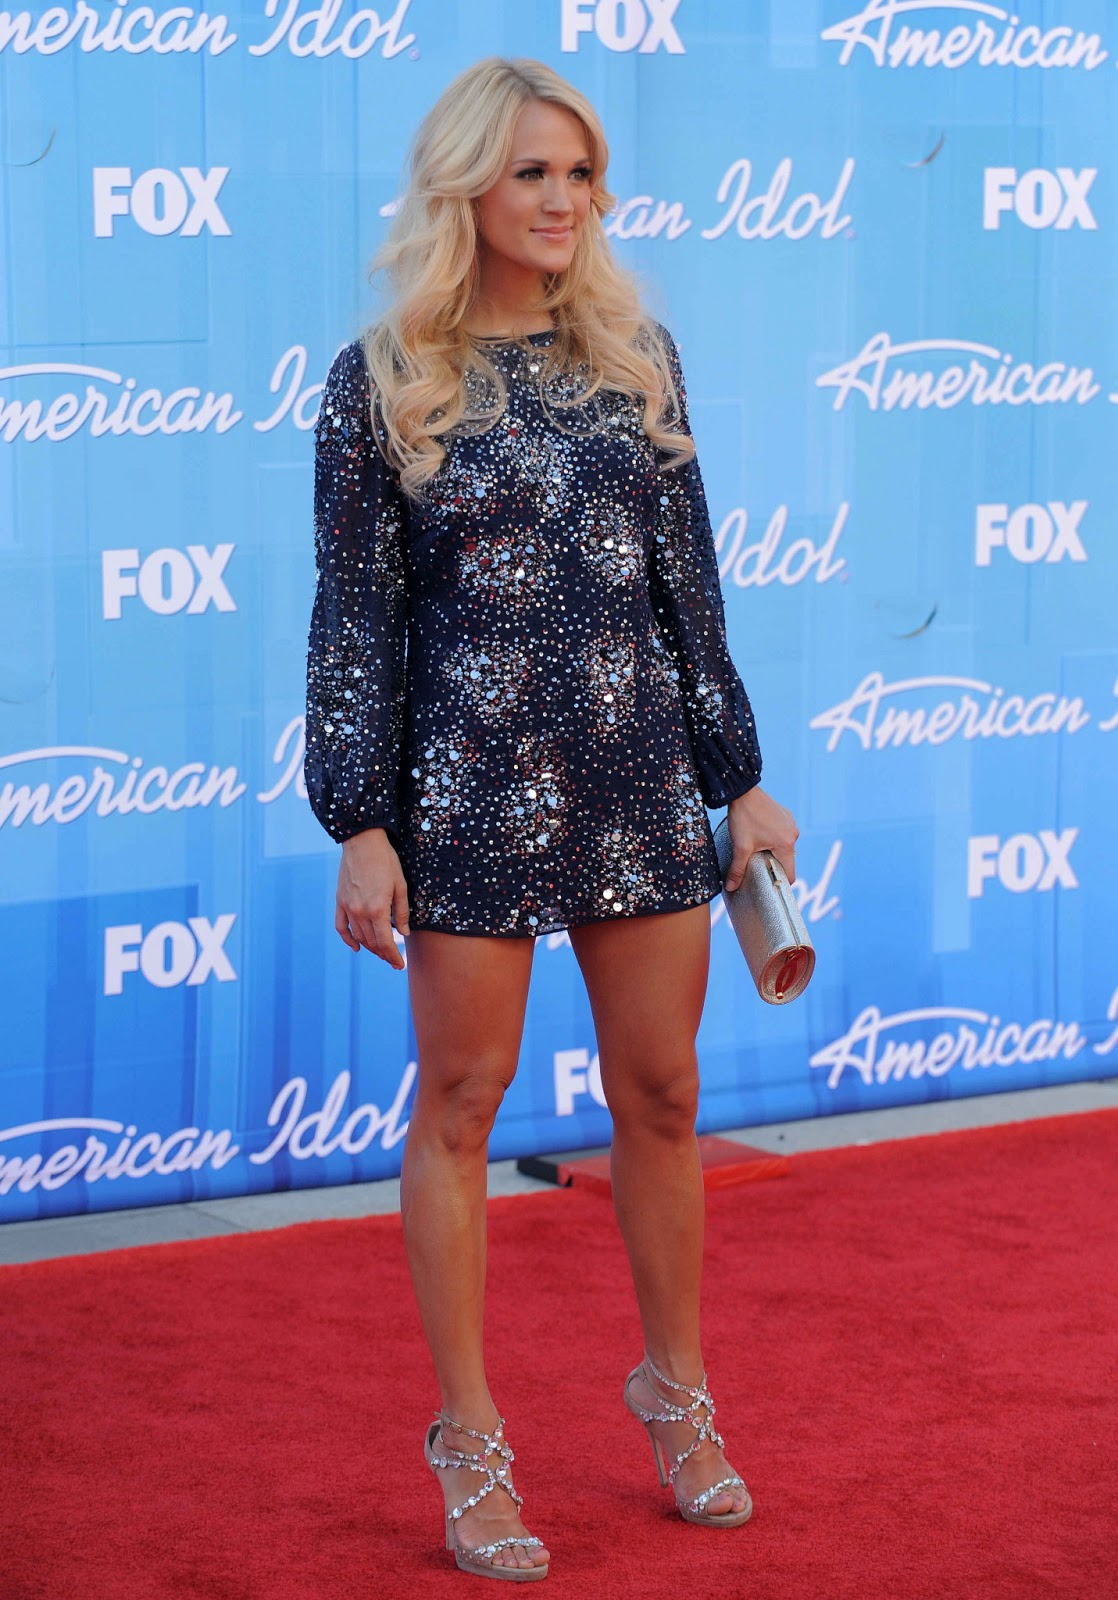 Carrie Underwood | Celebrity Shoes Gallery Emmy Rossum